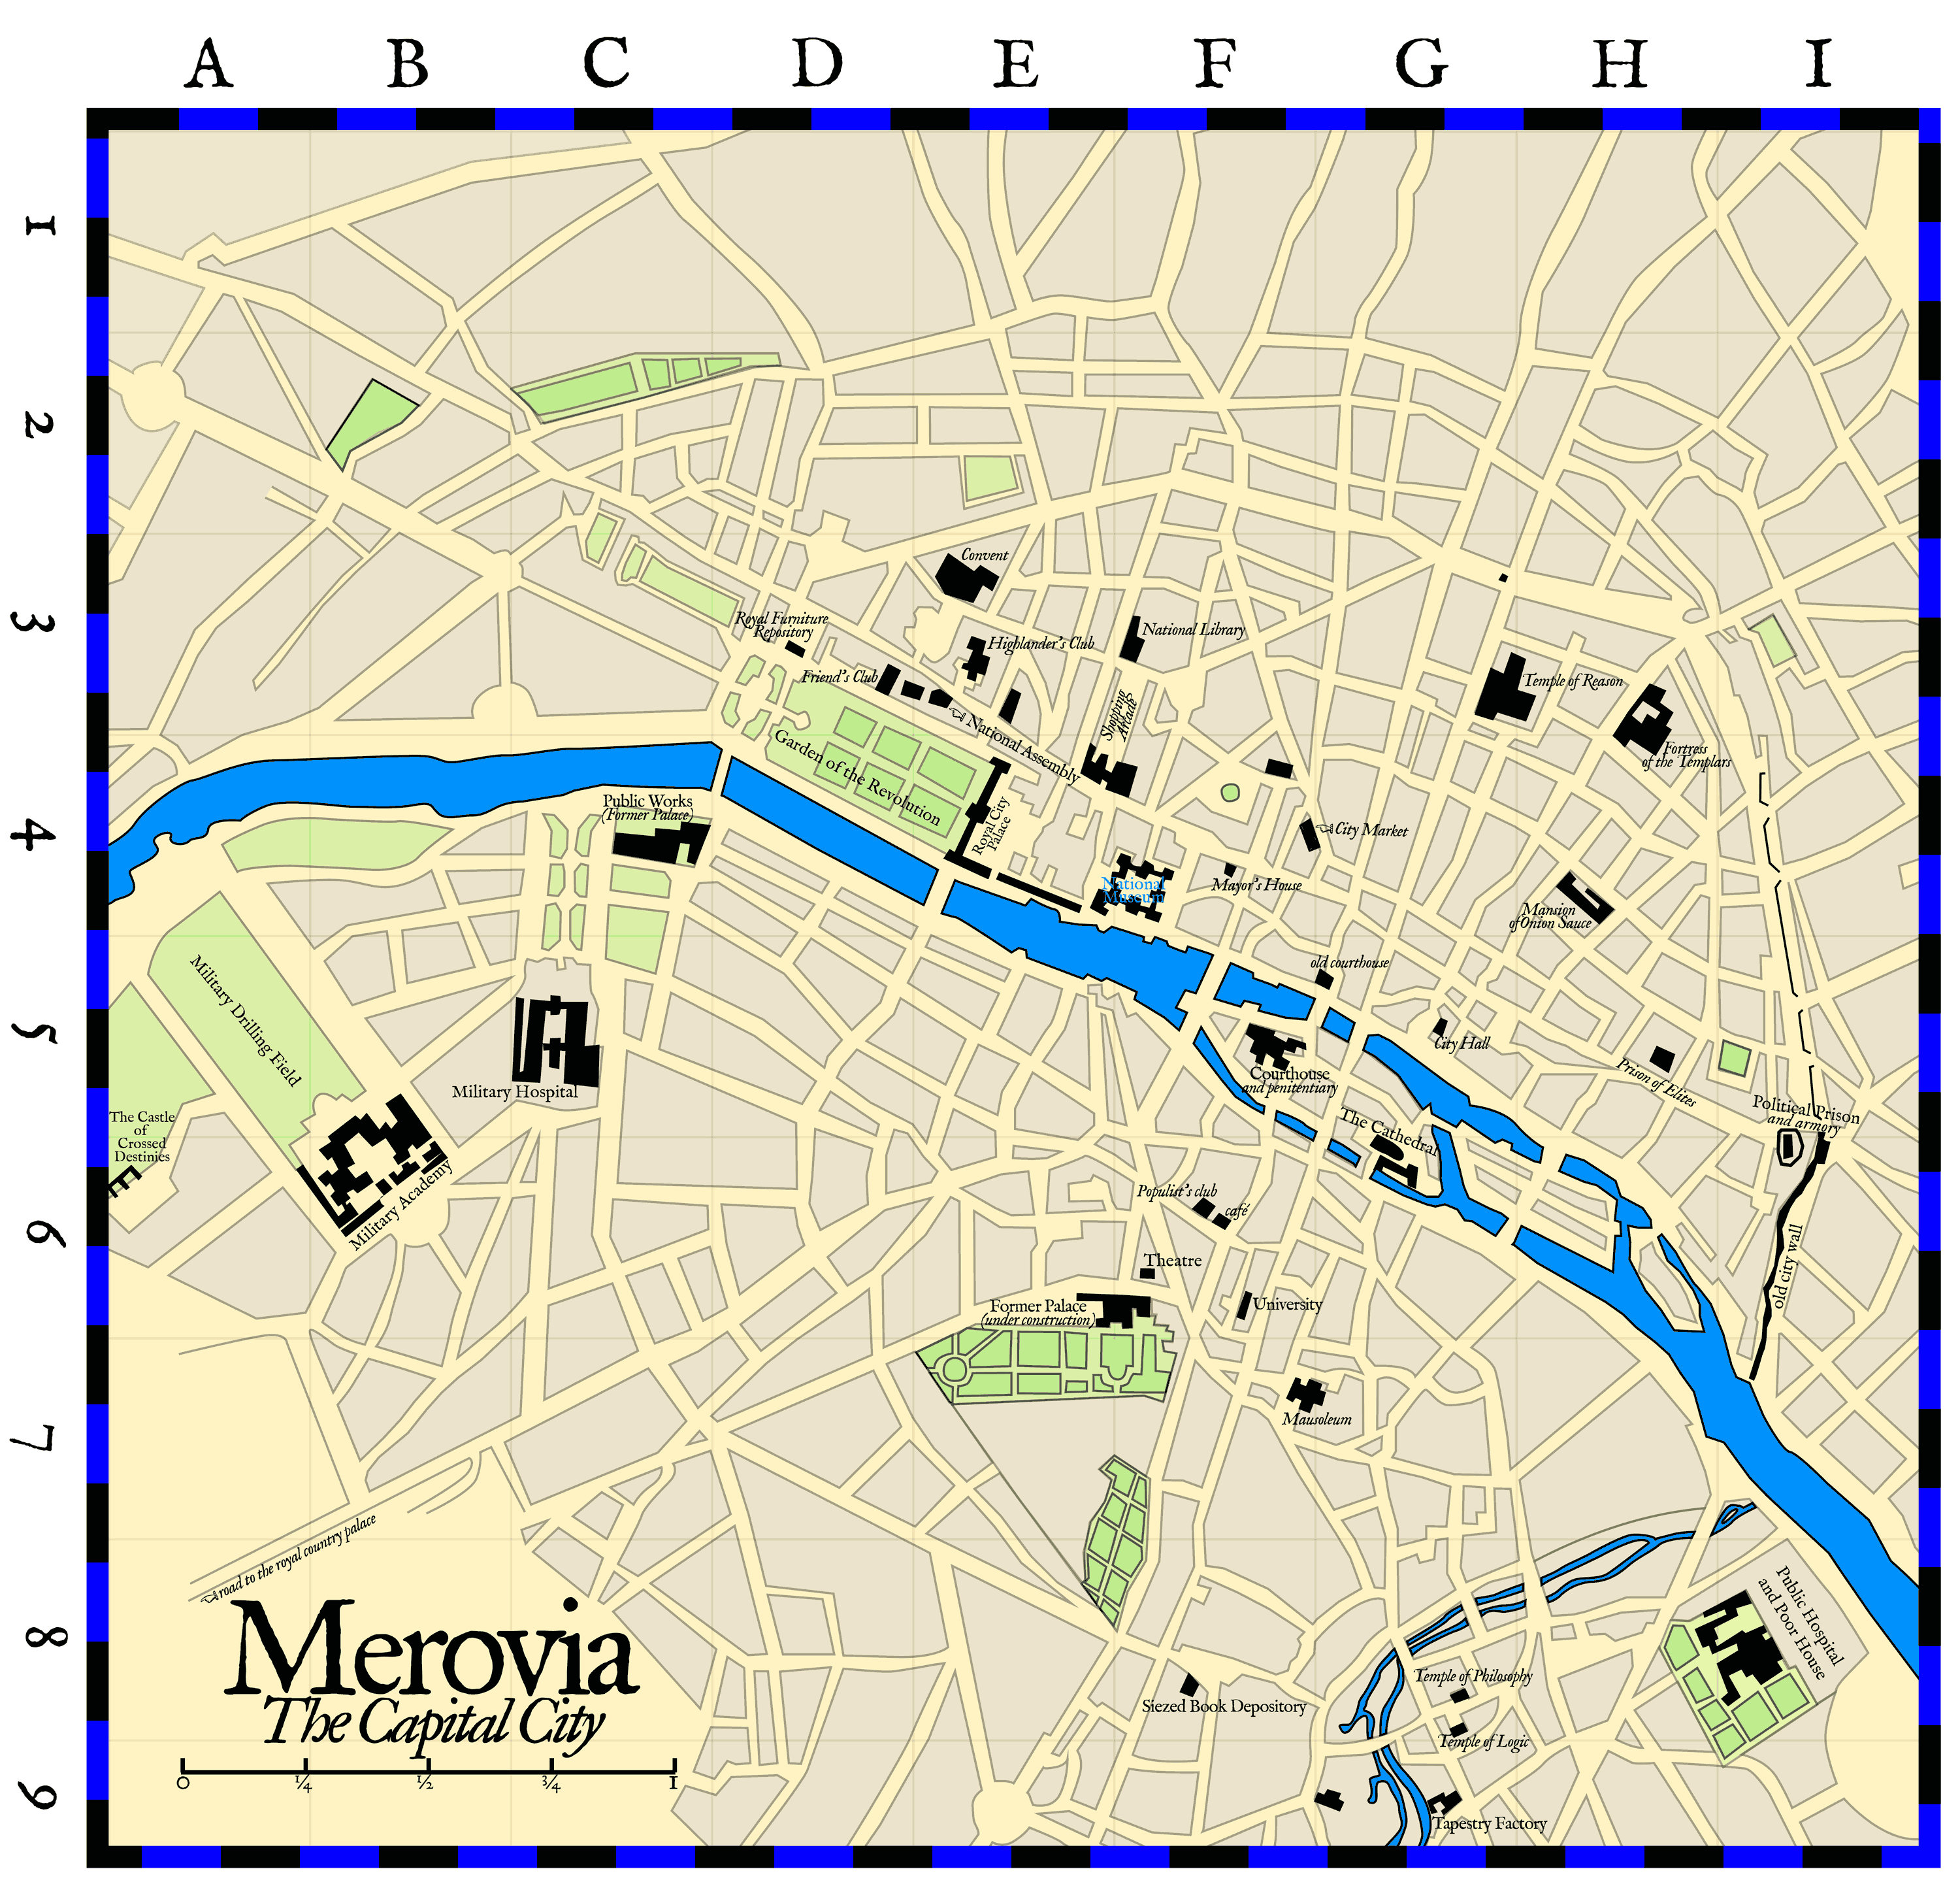 Map of the Merovin Capital City